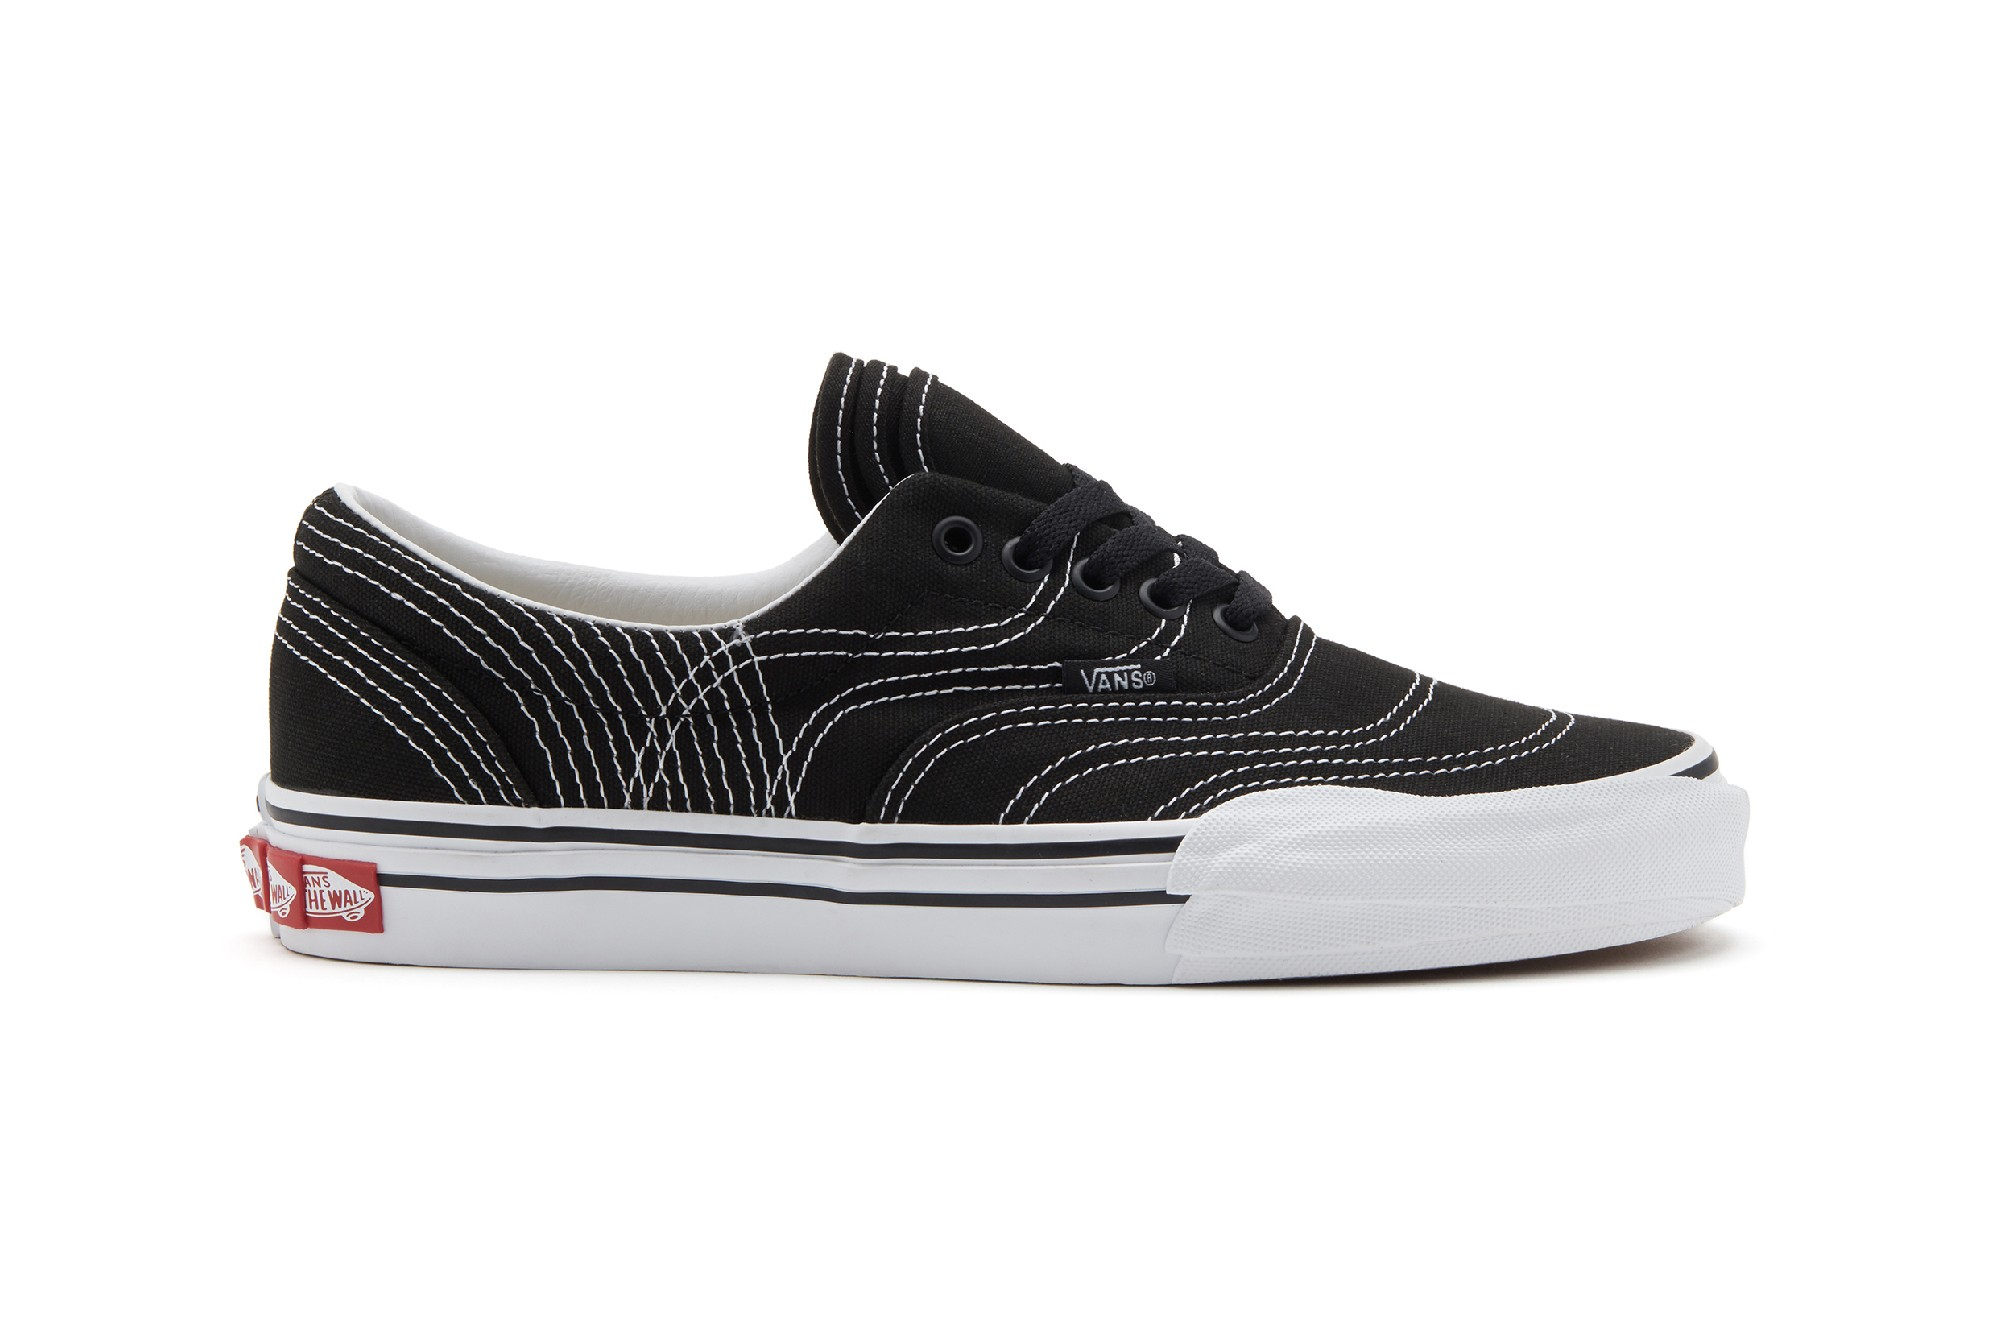 Vans Era 3RA Billy's-Exclusive Sneaker Release | HYPEBEAST DROPS